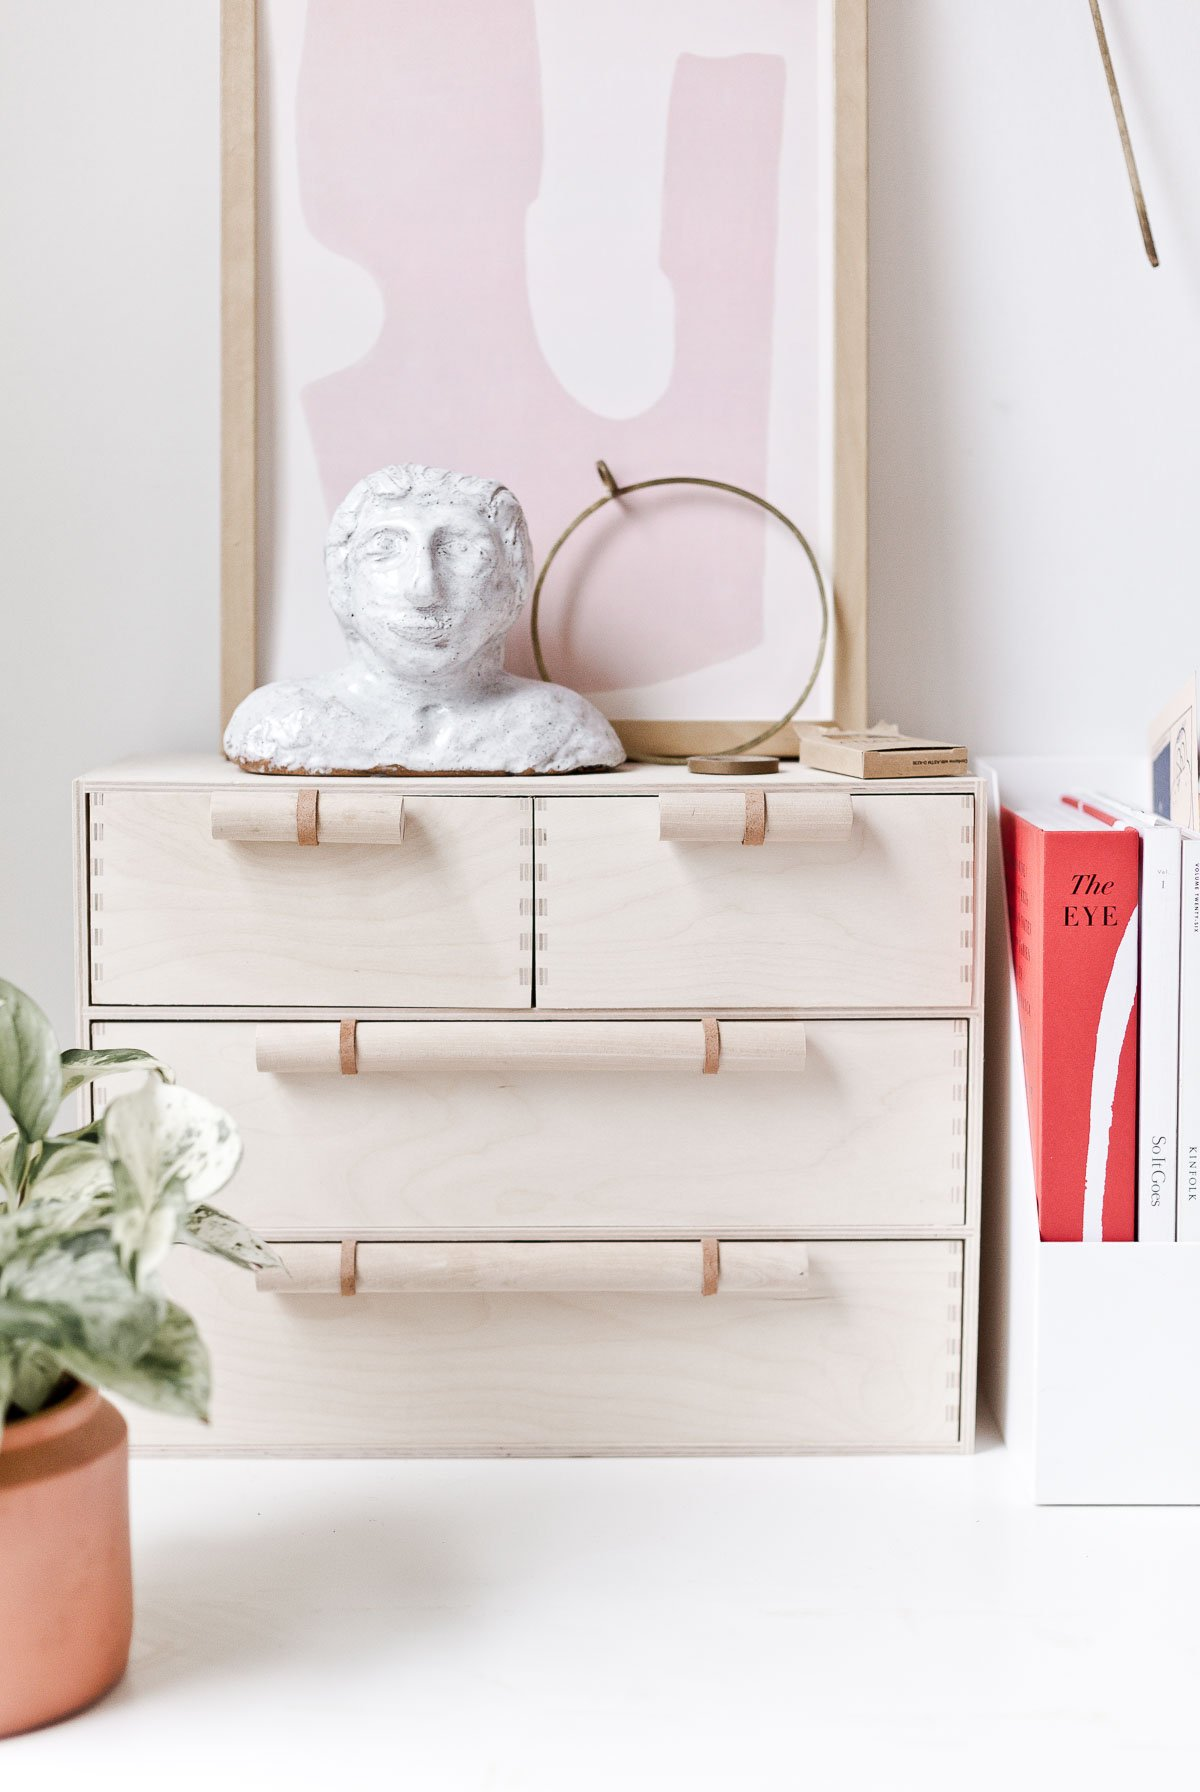 DIY Ikea Hack! Looking for a minimal modern Ikea hack that will elevate your Moppe mini storage chest? Check out this DIY idea that involves making your own custom wood and leather drawers pulls that instantly upgrade one of Ikea's most popular products. #ikeahack #diy #deskorganizer #desk #wooddiy #drawerpulls #diydrawerpulls #minimalmodern #organicmodern